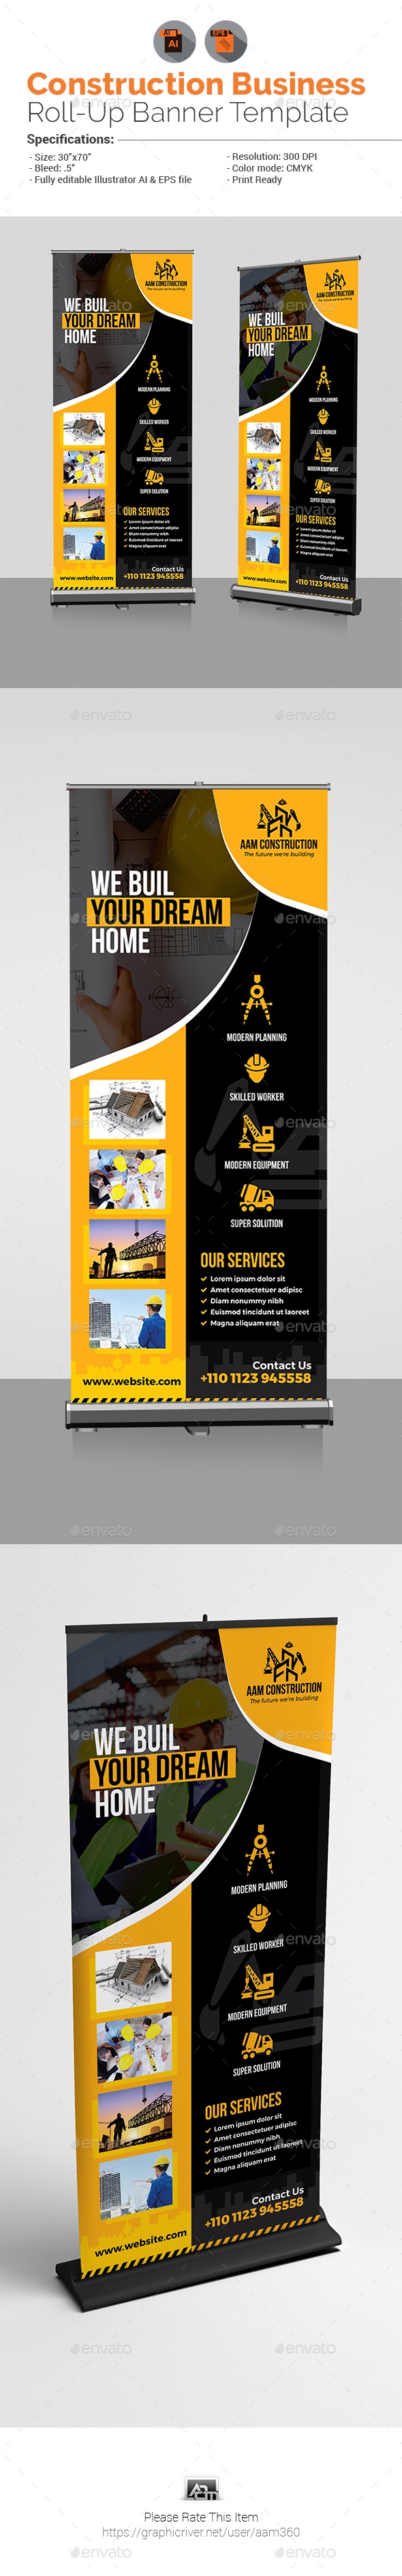 Construction Business Roll-Up Banner - Signage Print Templates